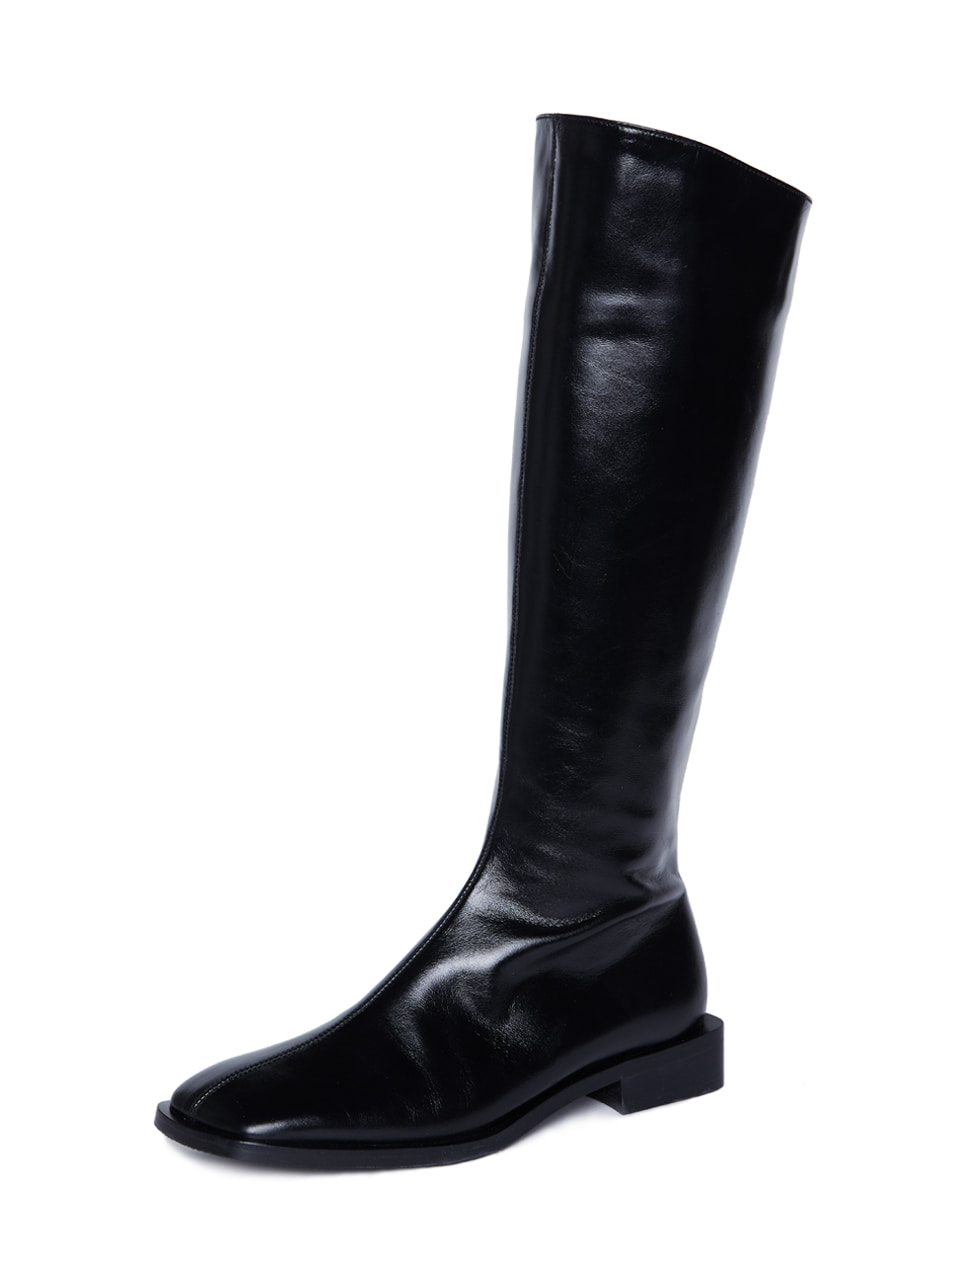 #1 Square Long boots [BK]